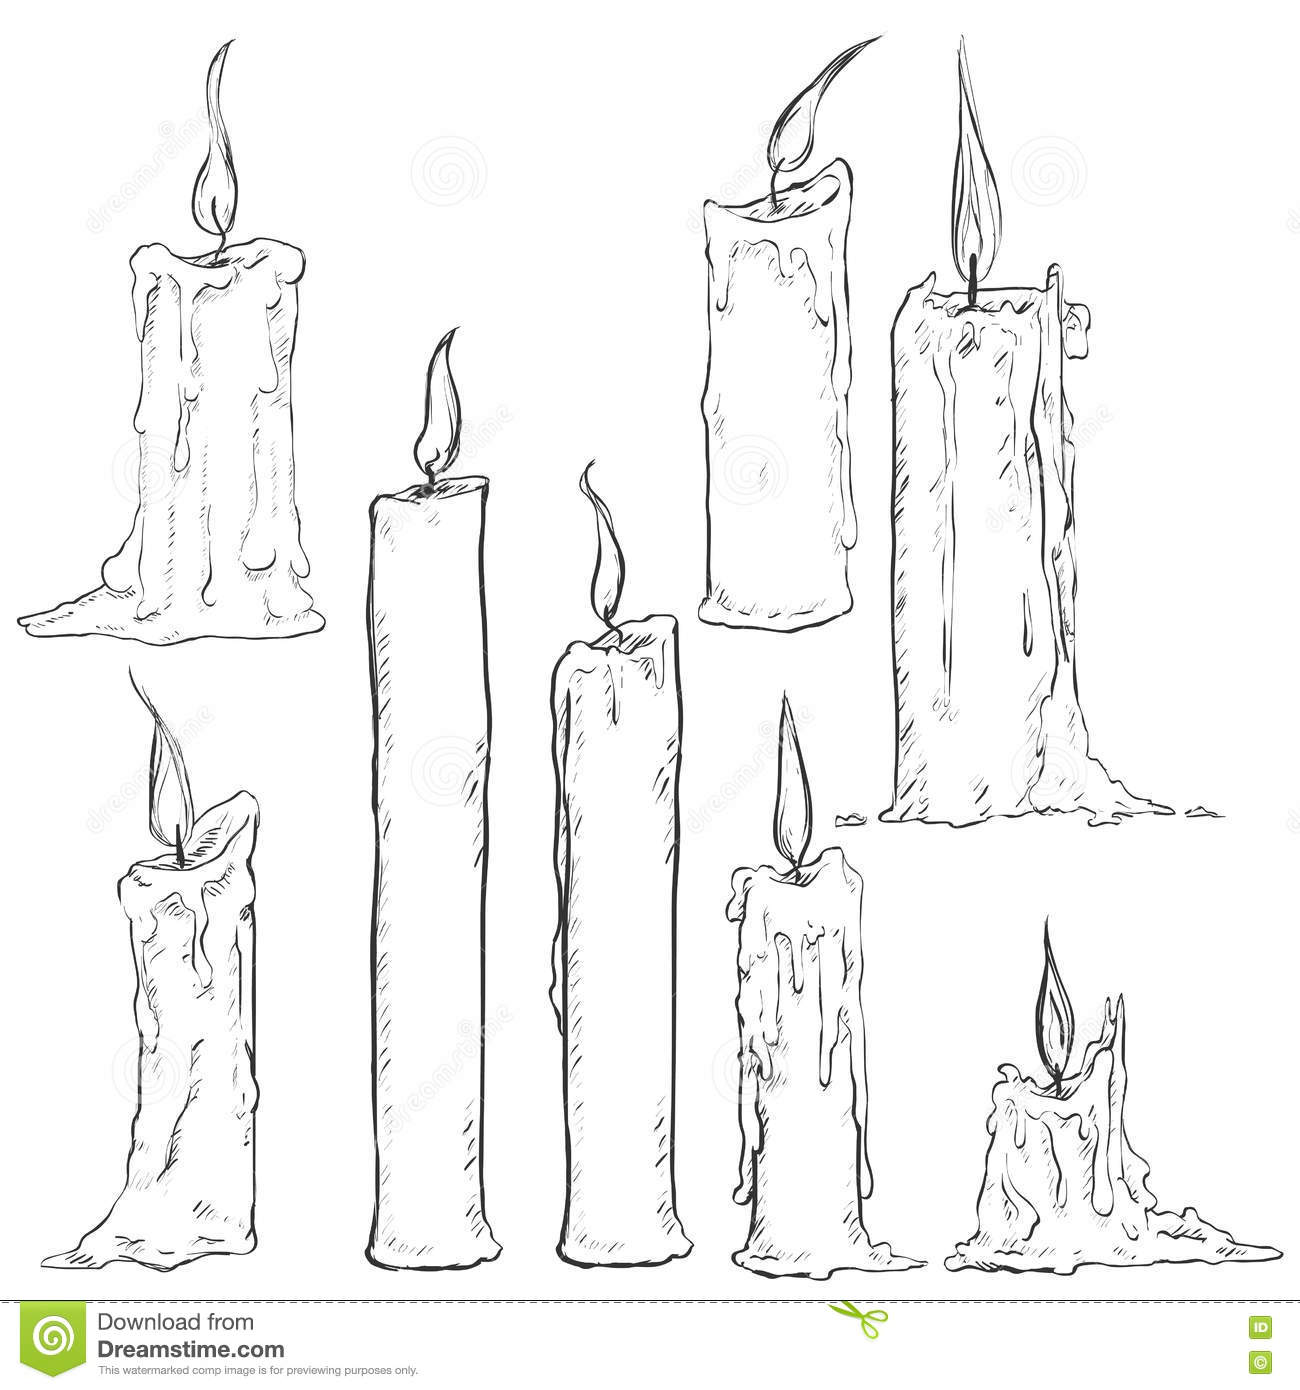 It is a graphic of Bewitching Drawing Of A Candle